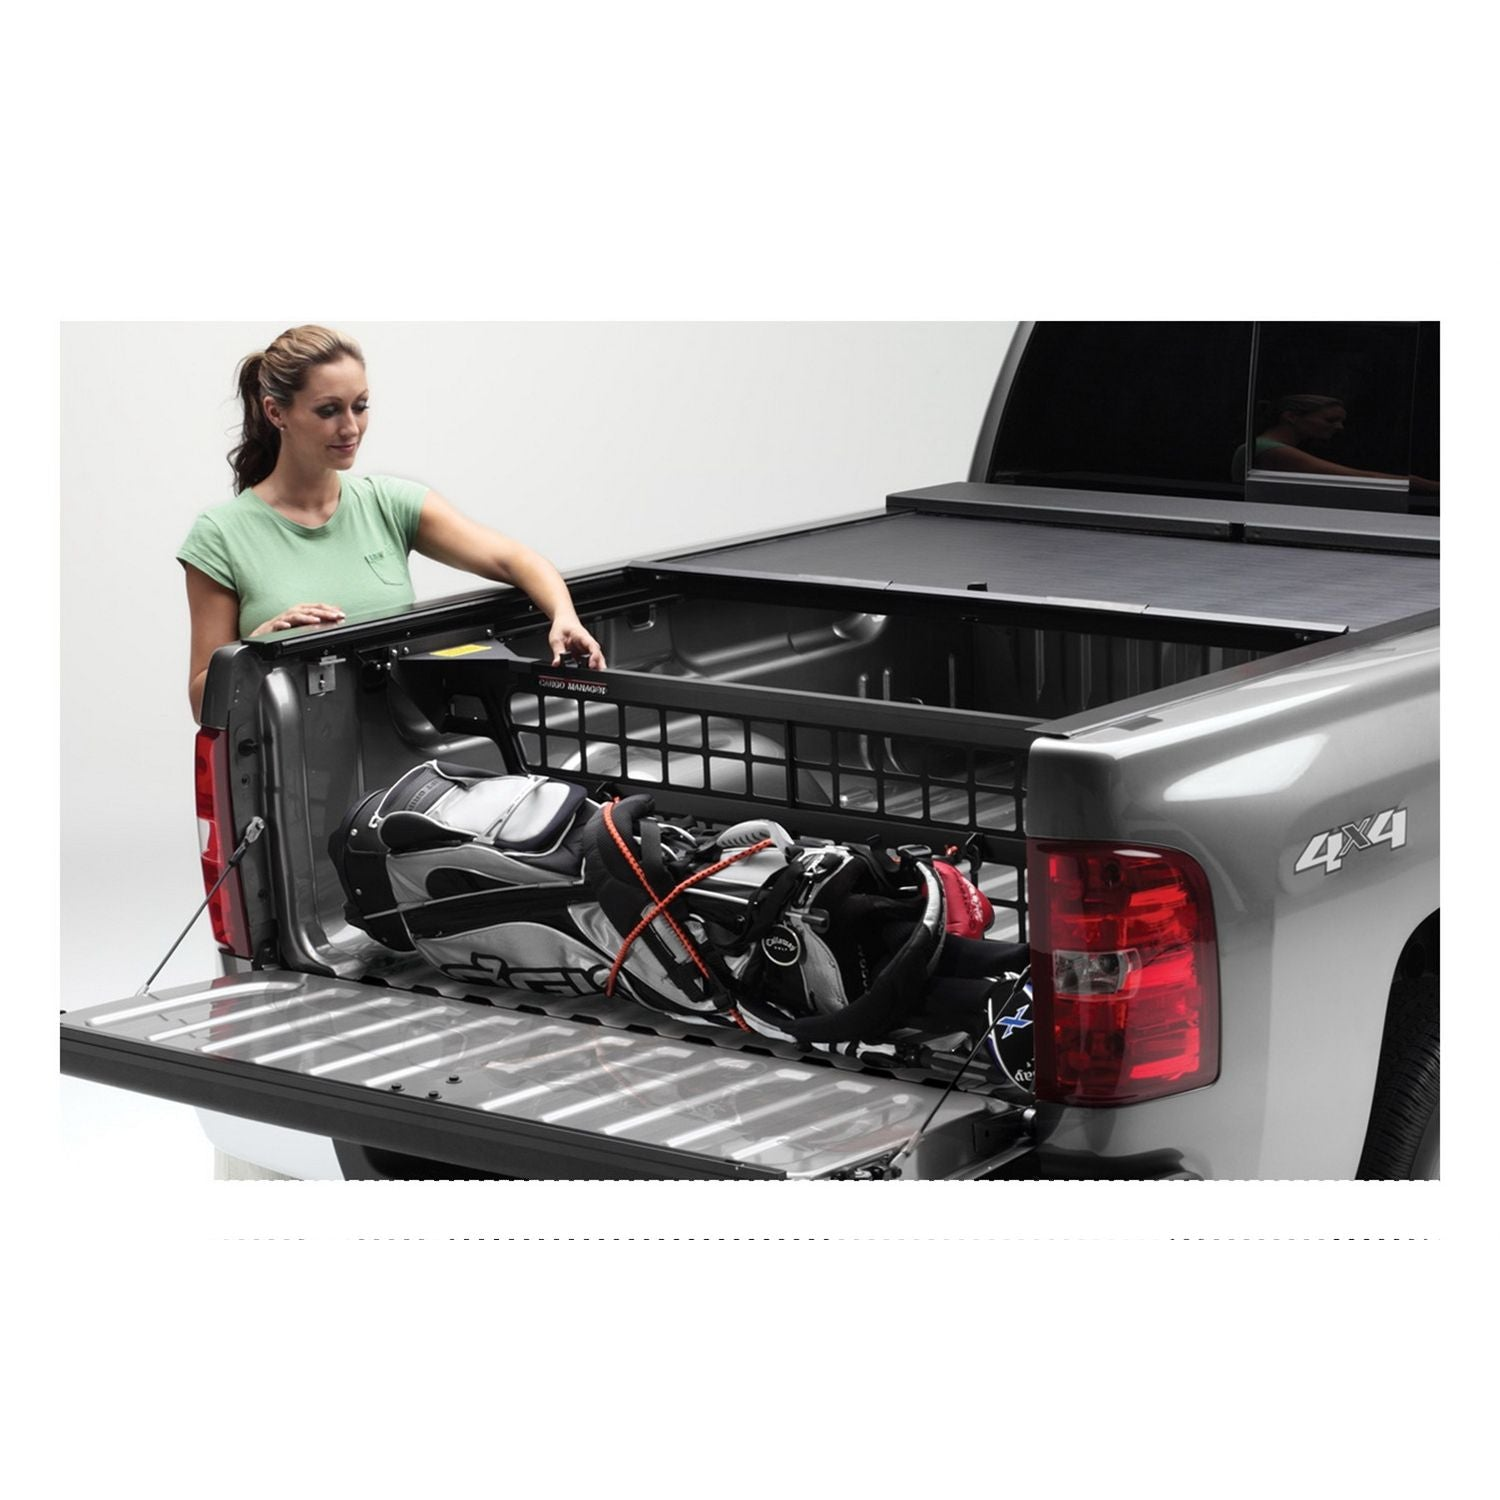 Roll-N-Lock CM447 Cargo Manager Rolling Truck Bed Divider Works Only with Roll-N-Lock Covers for 2019 Ram 1500 Classic; 2009-2018 Dodge Ram 1500 | Fits 5.6 Ft. Bed (Excludes Models w/RamBox)